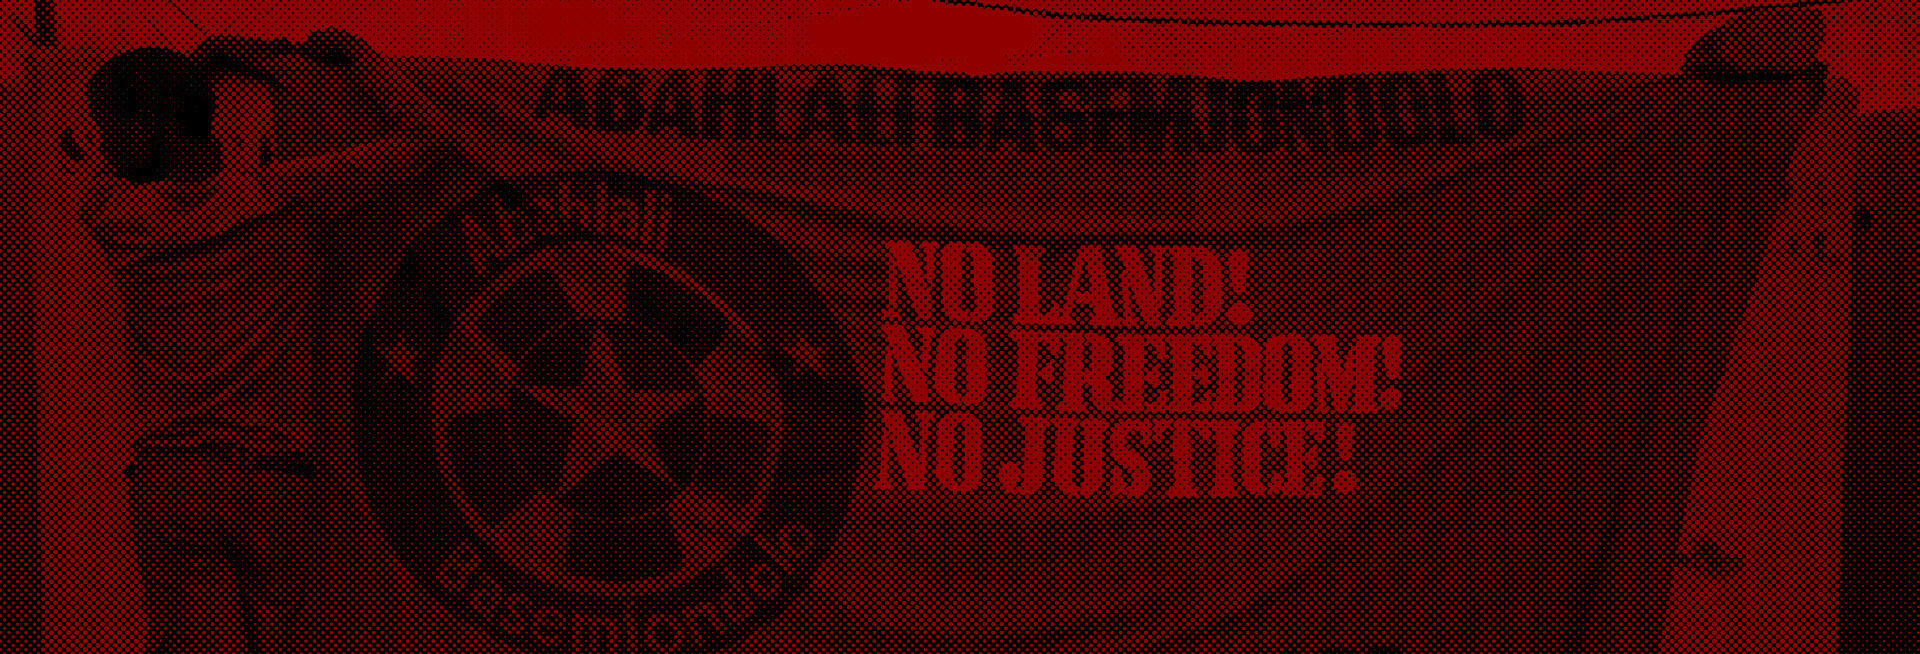 abahlali banner fixed redII